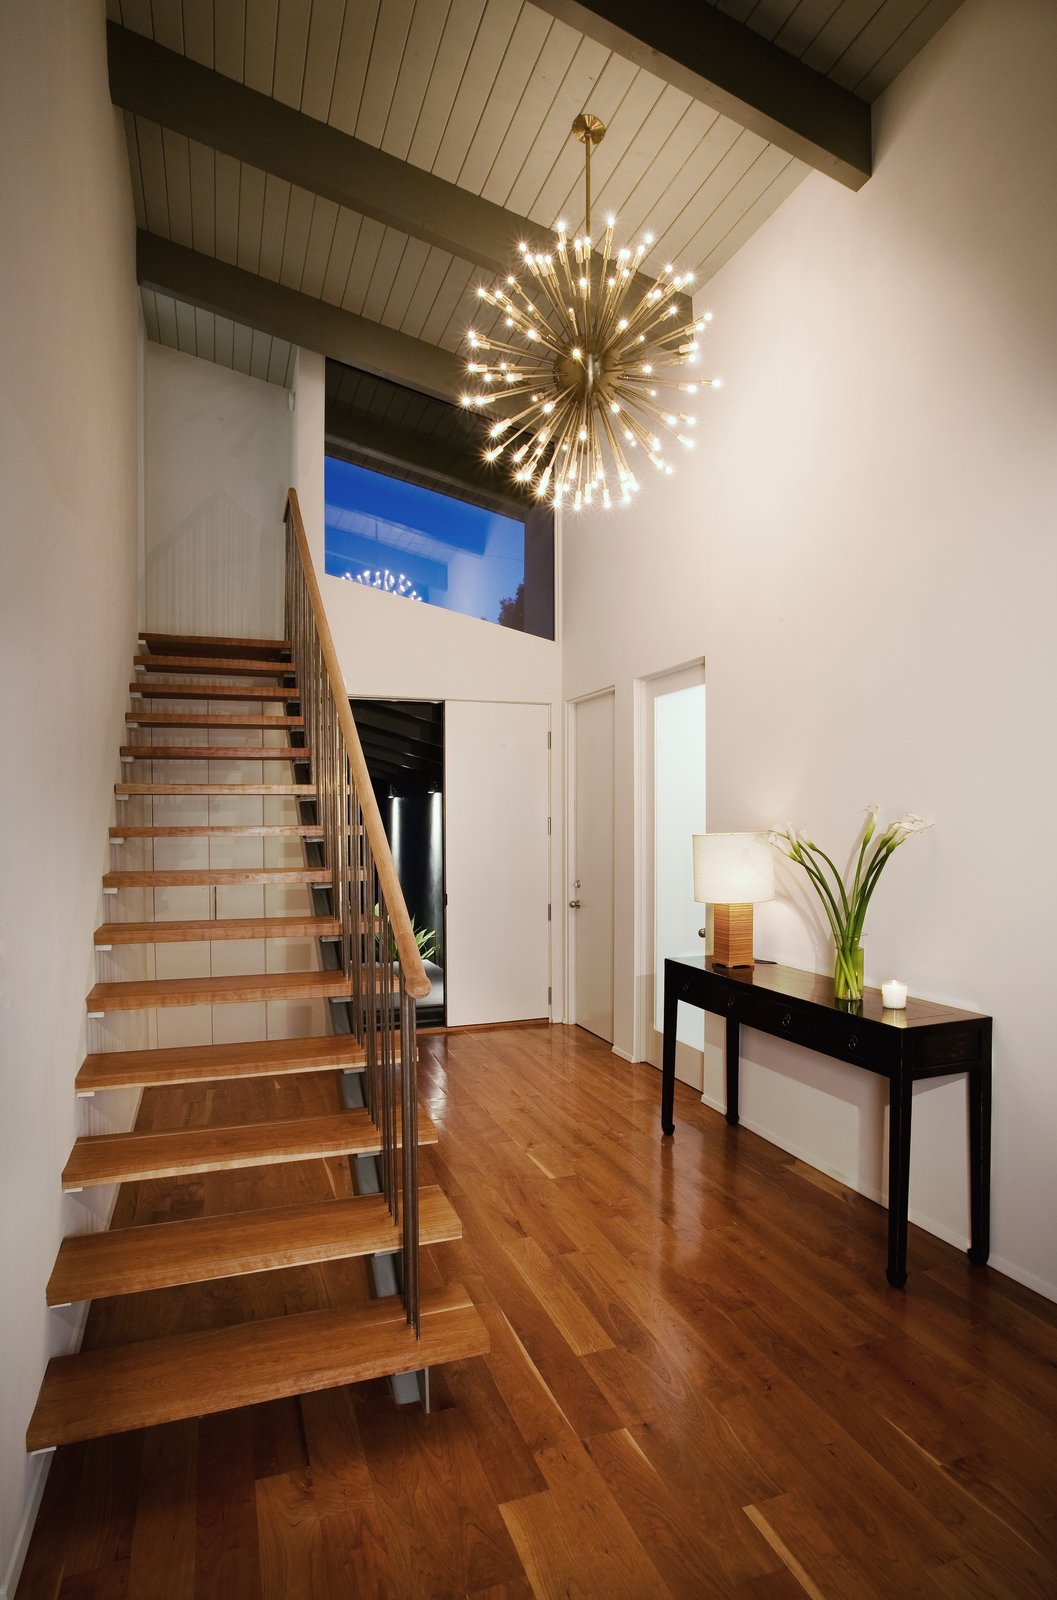 In the entryway, a brass Sputnik chandelier illuminates the airy American elm staircase.  190+ Best Modern Staircase Ideas from A Renovation Elevates This Humble Ranch Among its Iconic Midcentury Neighbors